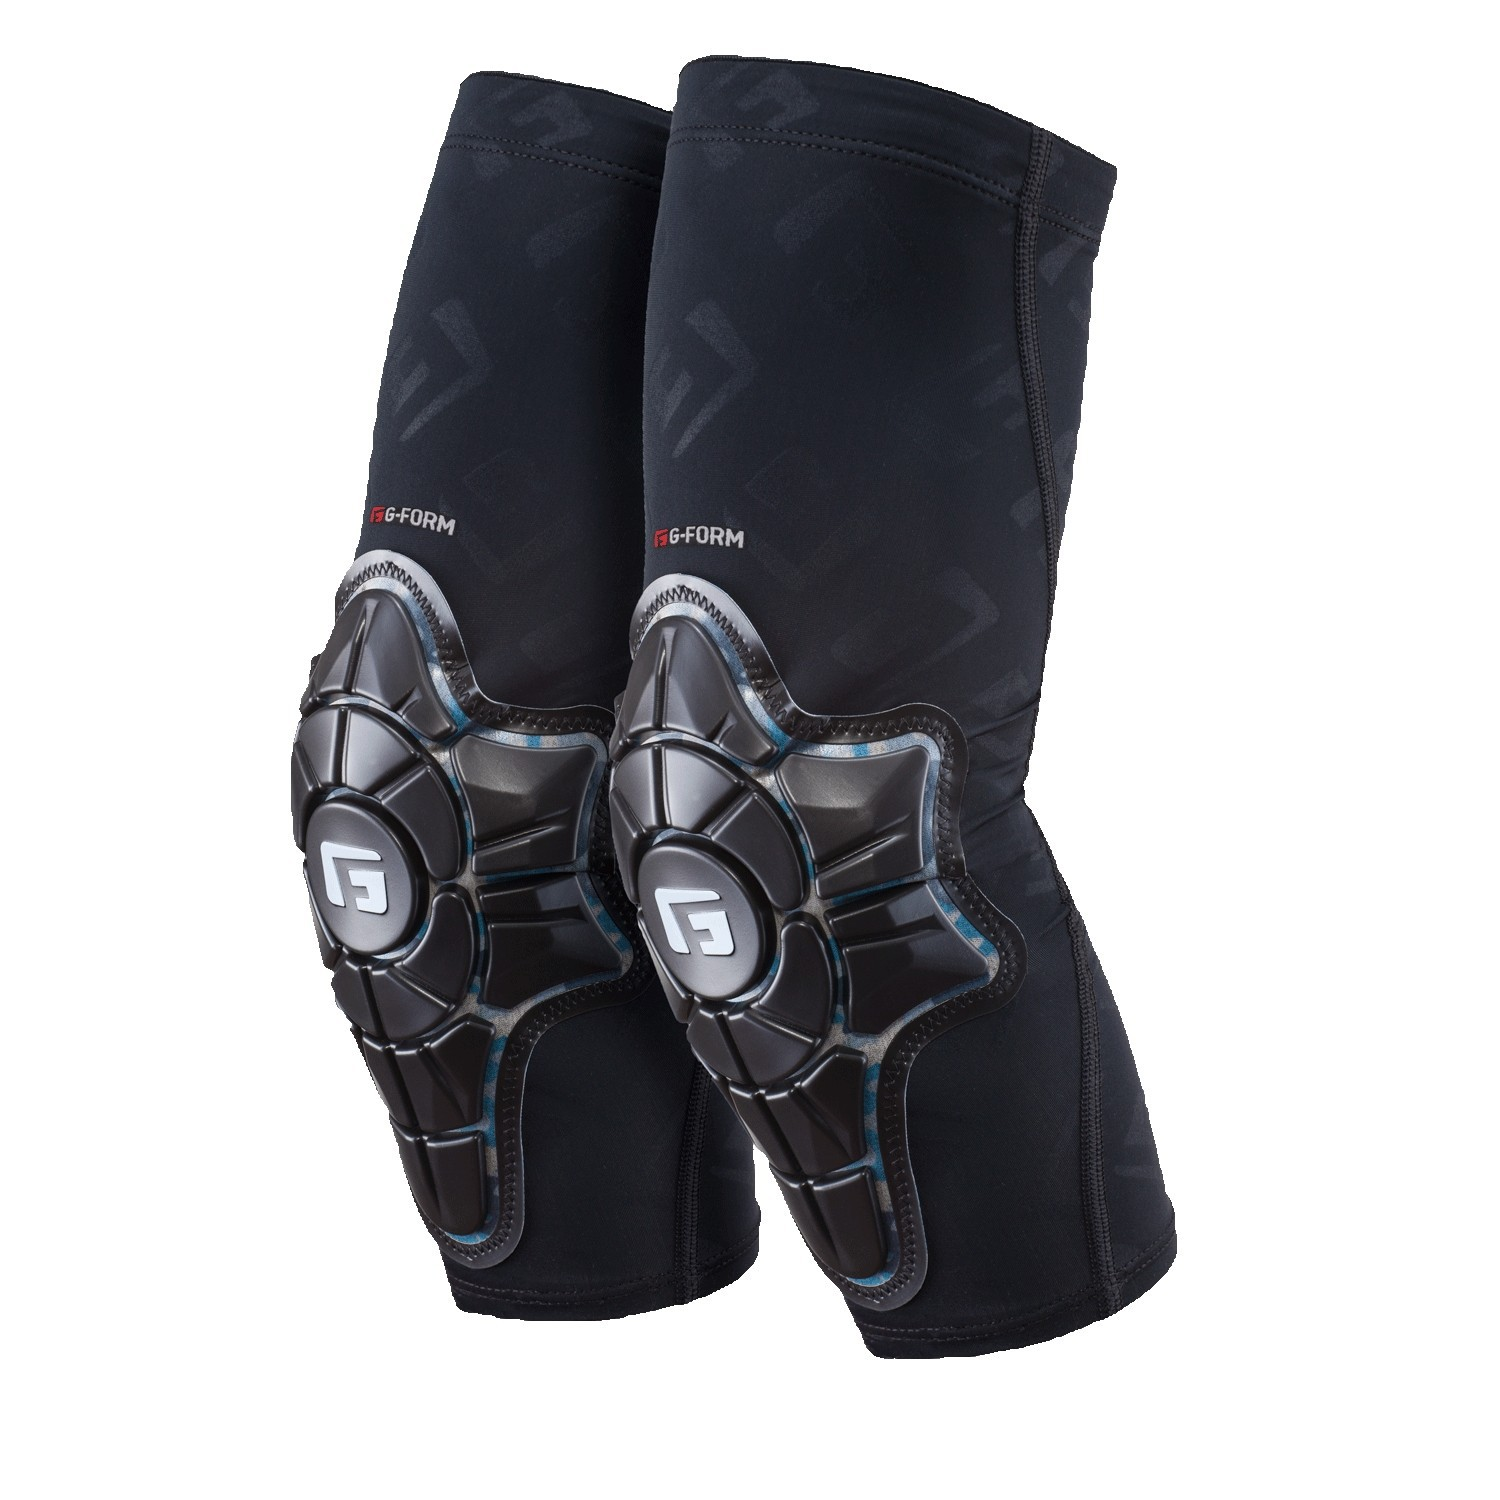 G-FORM PRO-X ELBOW PADS TEAL CAMO / BLACK